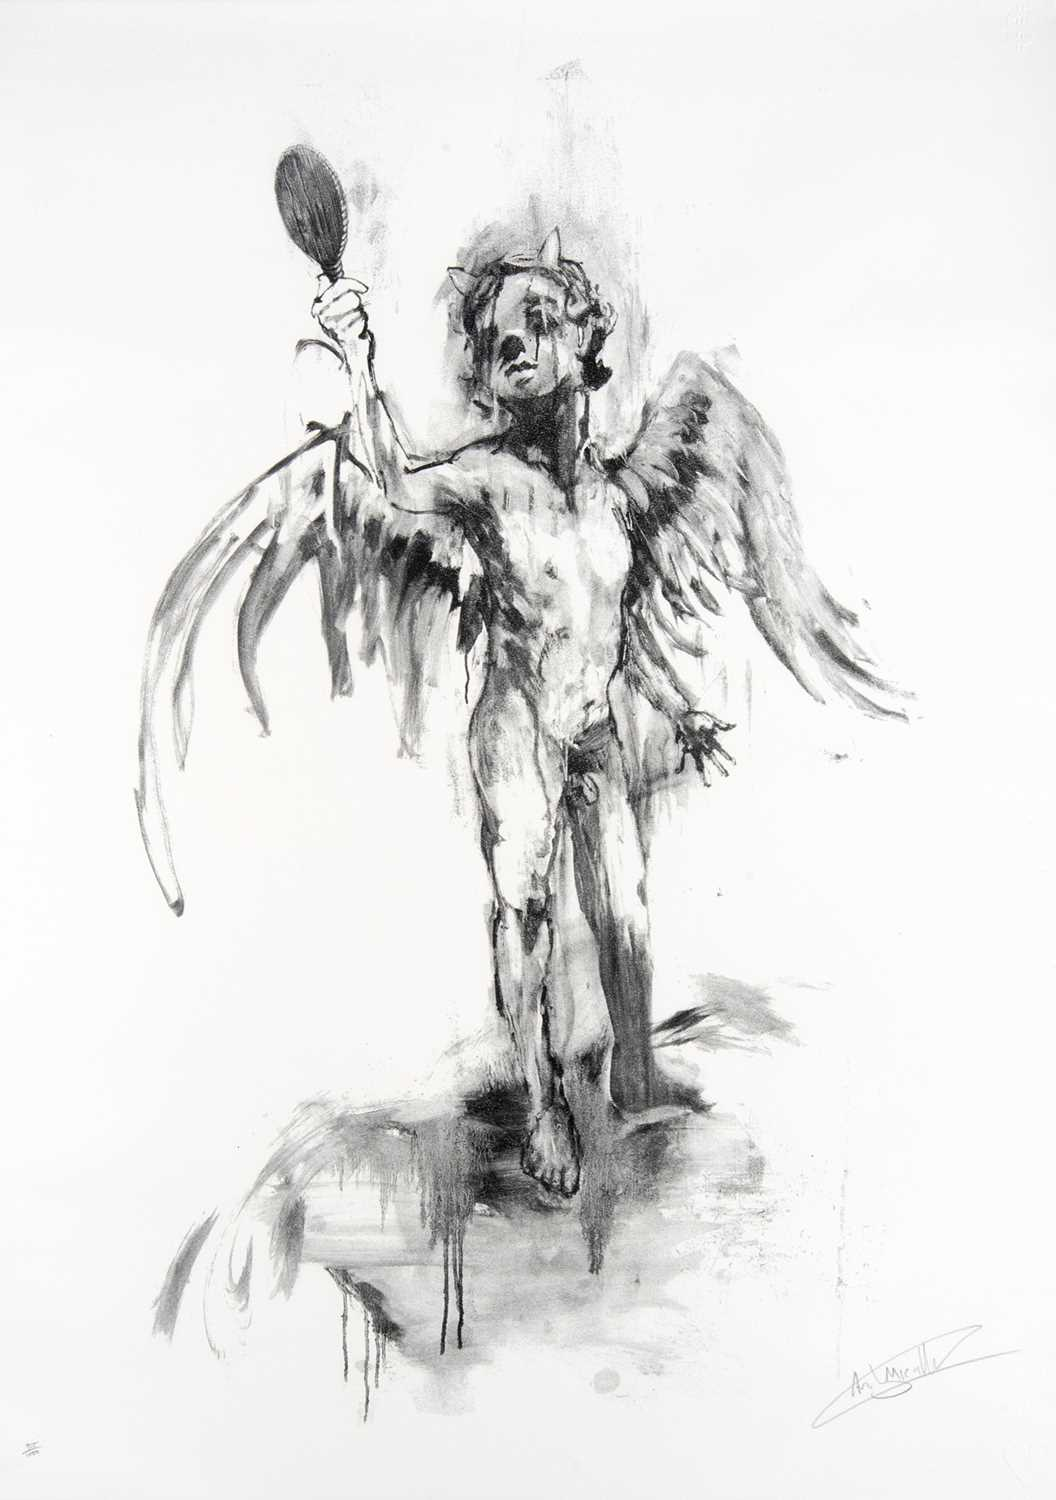 Lot 9-Antony Micallef (British 1975-), 'God I Want To Be Bad', 2007